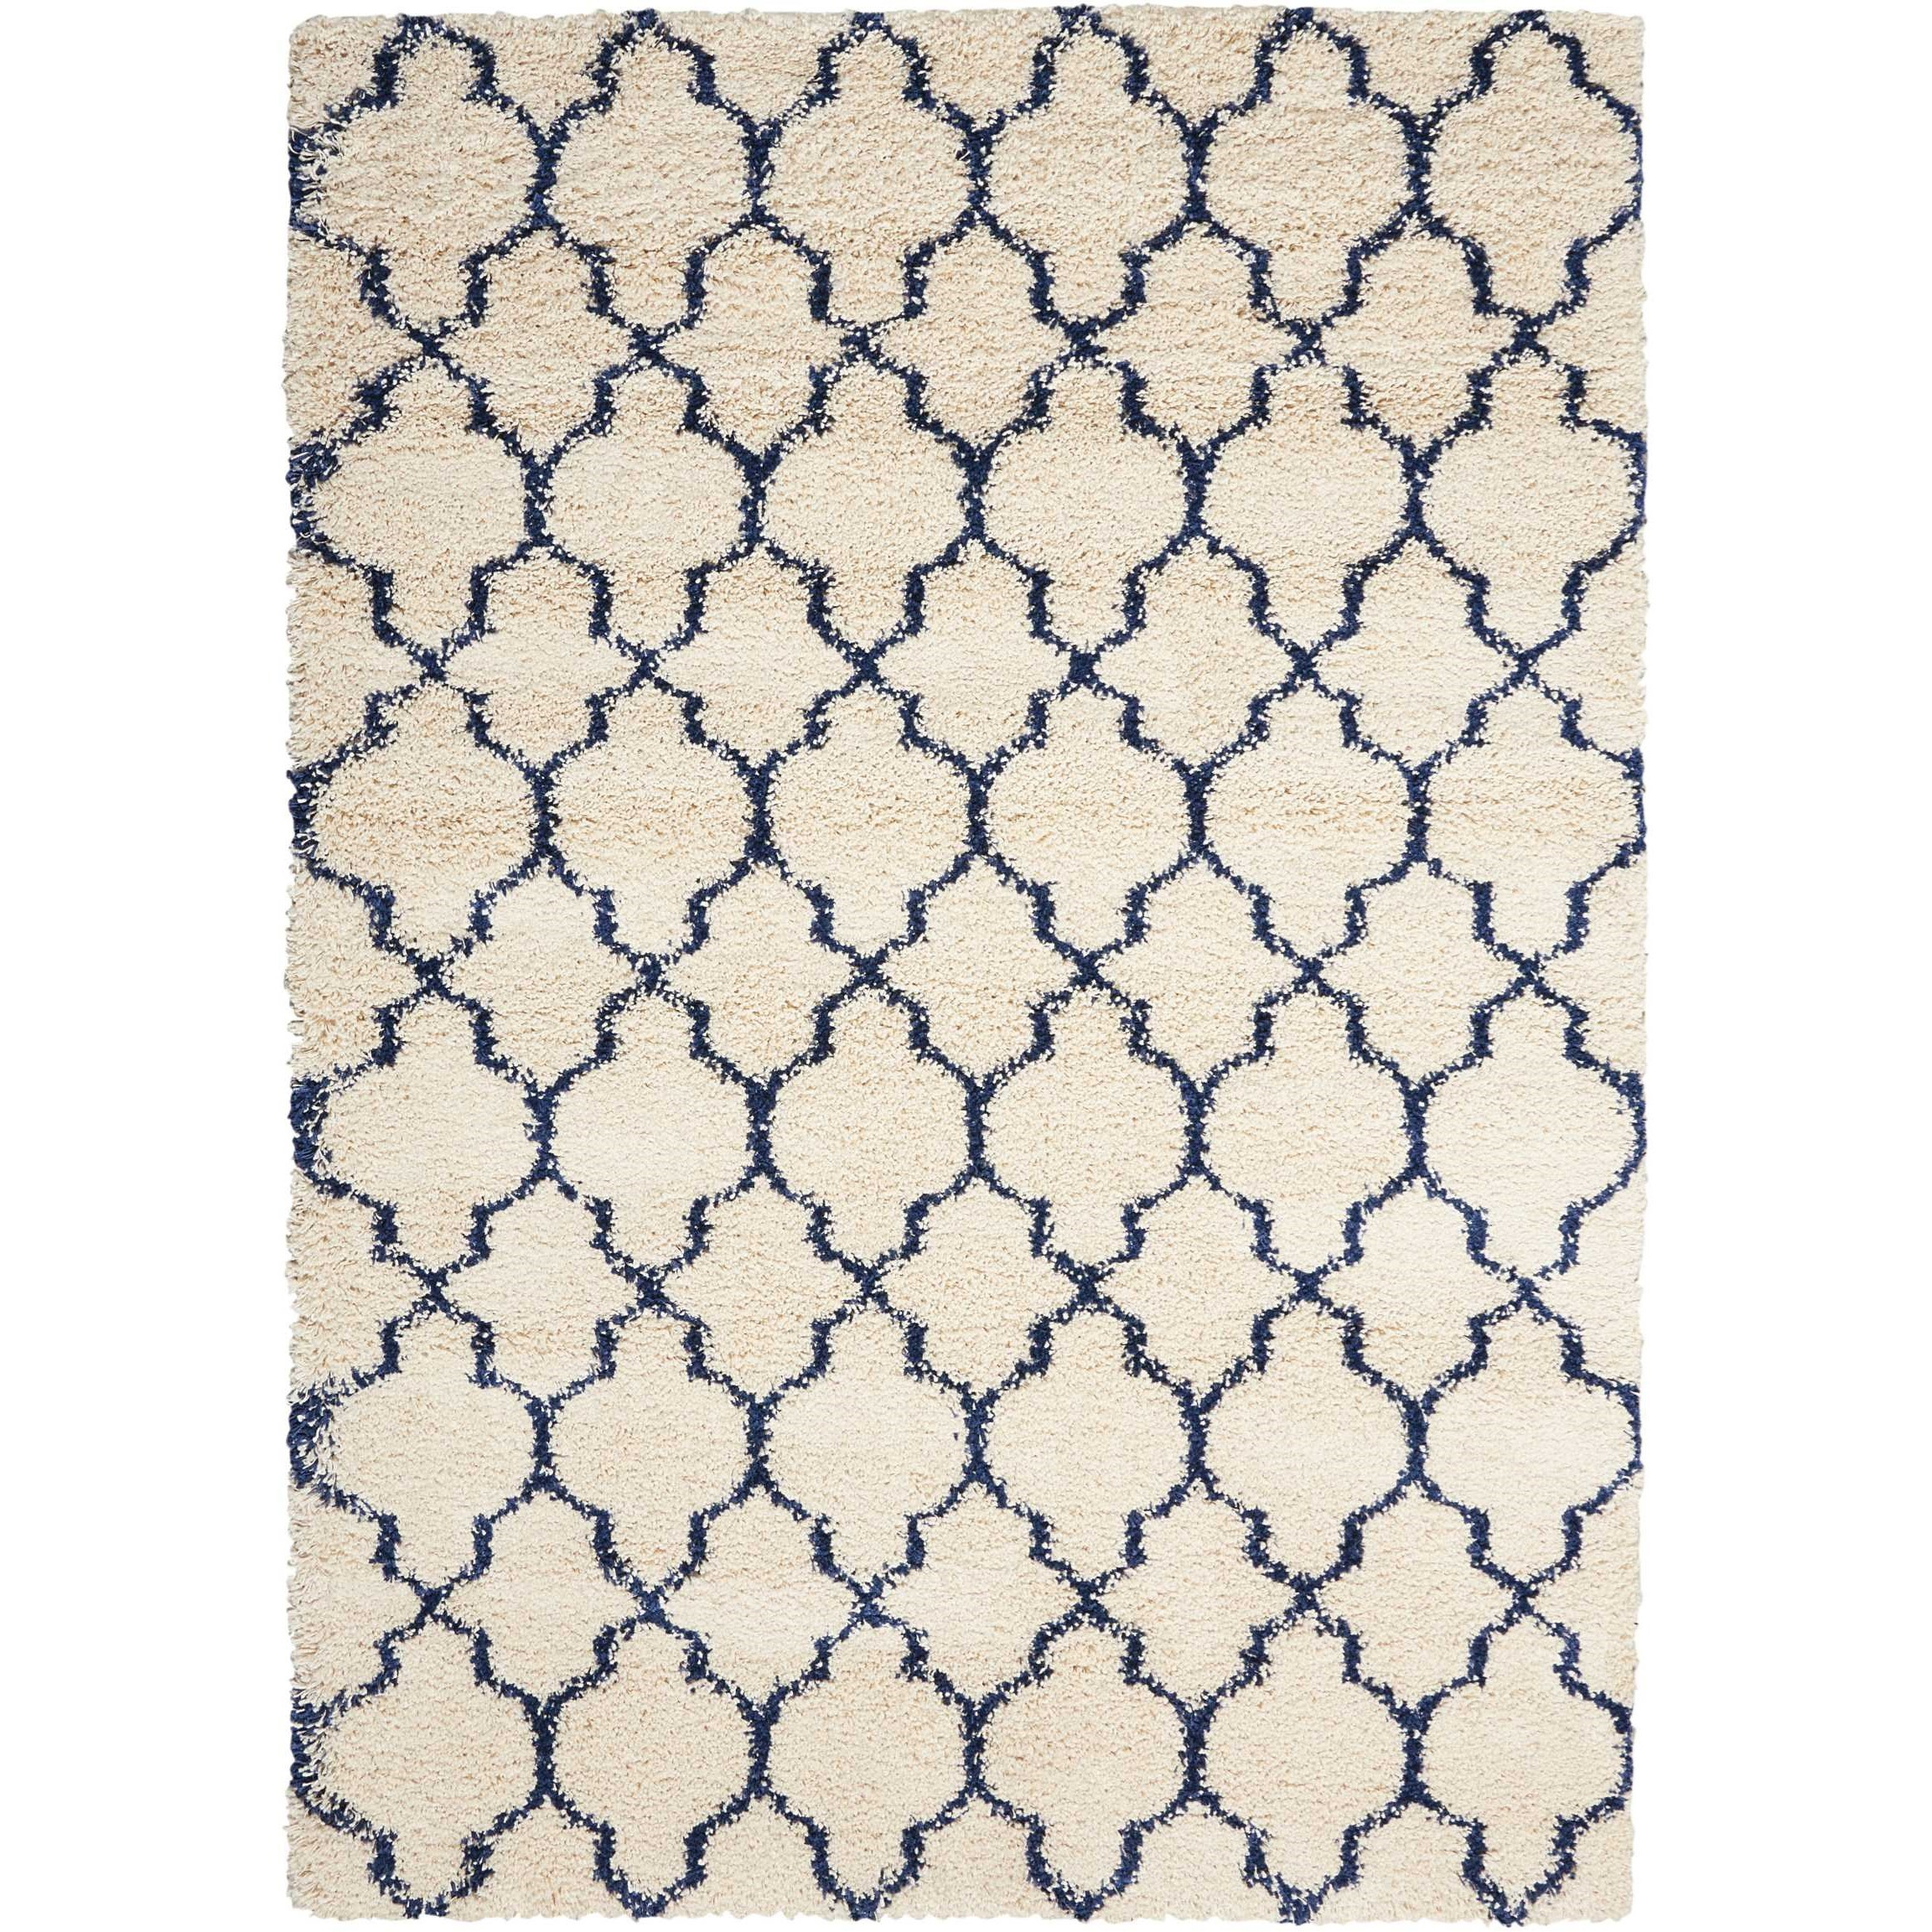 """Amore 5'3"""" x 7'5"""" Ivory/Blue Rectangle Rug by Nourison at Home Collections Furniture"""